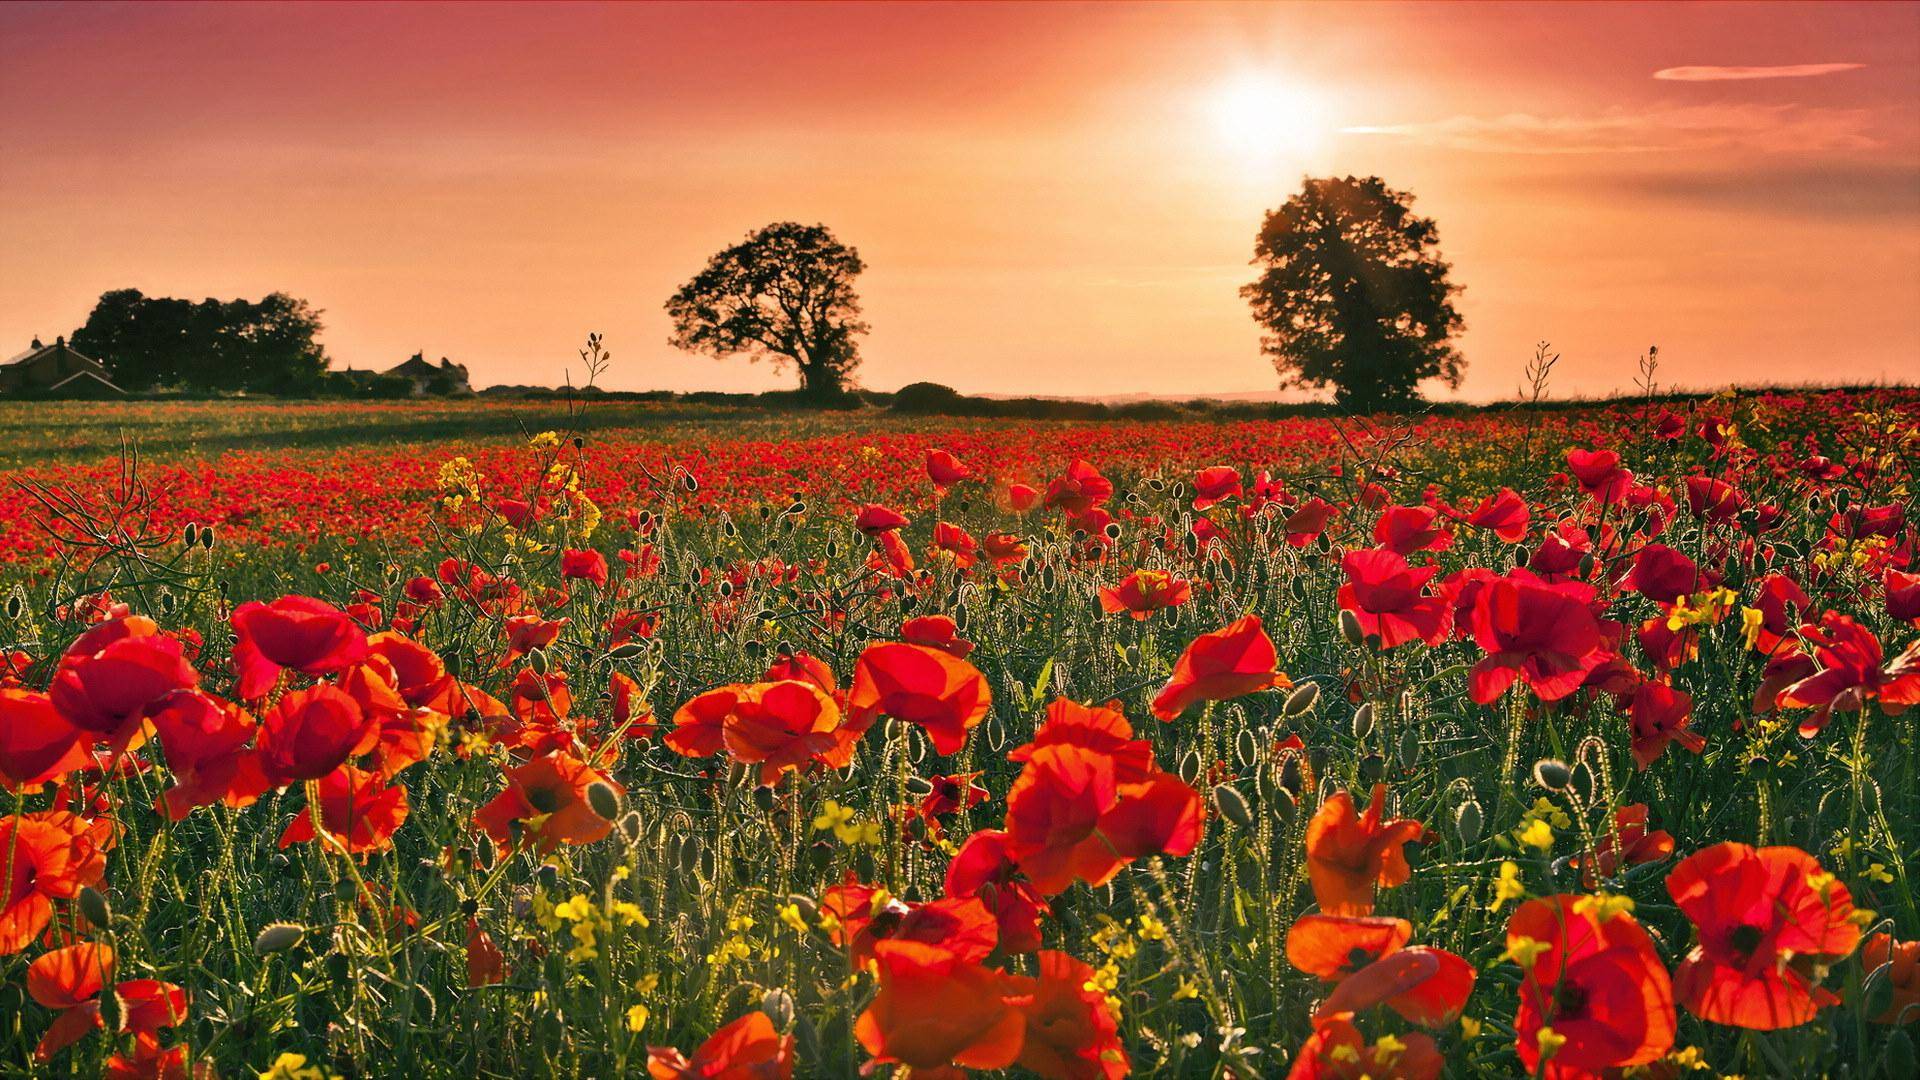 Pictures of poppies wallpapers 38 wallpapers adorable wallpapers - Poppy wallpaper ...